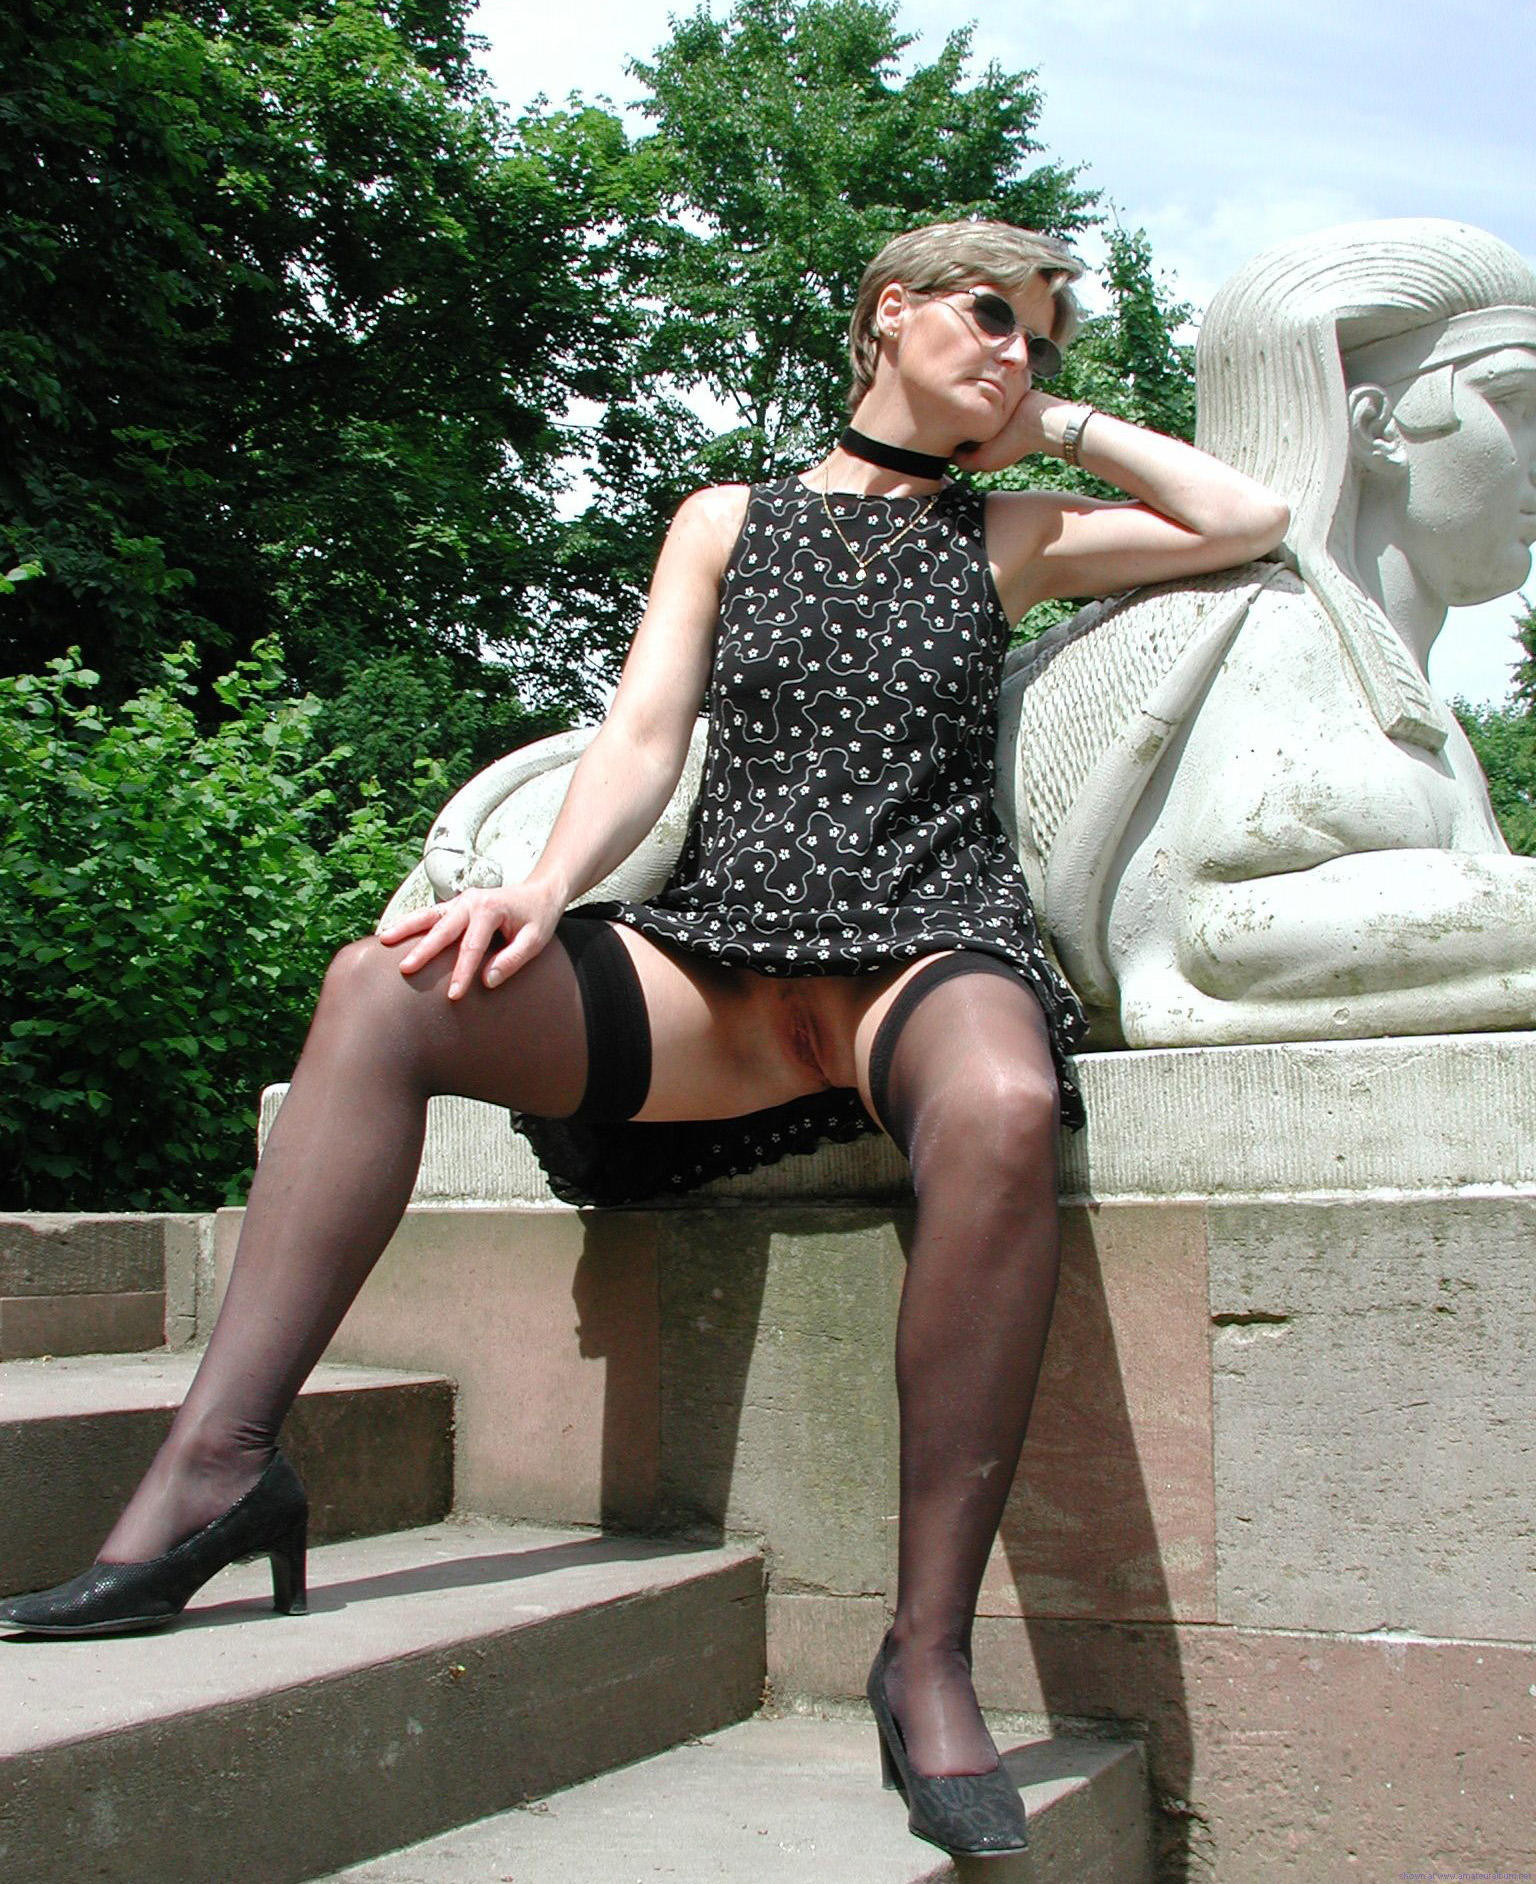 hot grandma upskirt - belief, SMS Double Toy Pleasure talking round the common